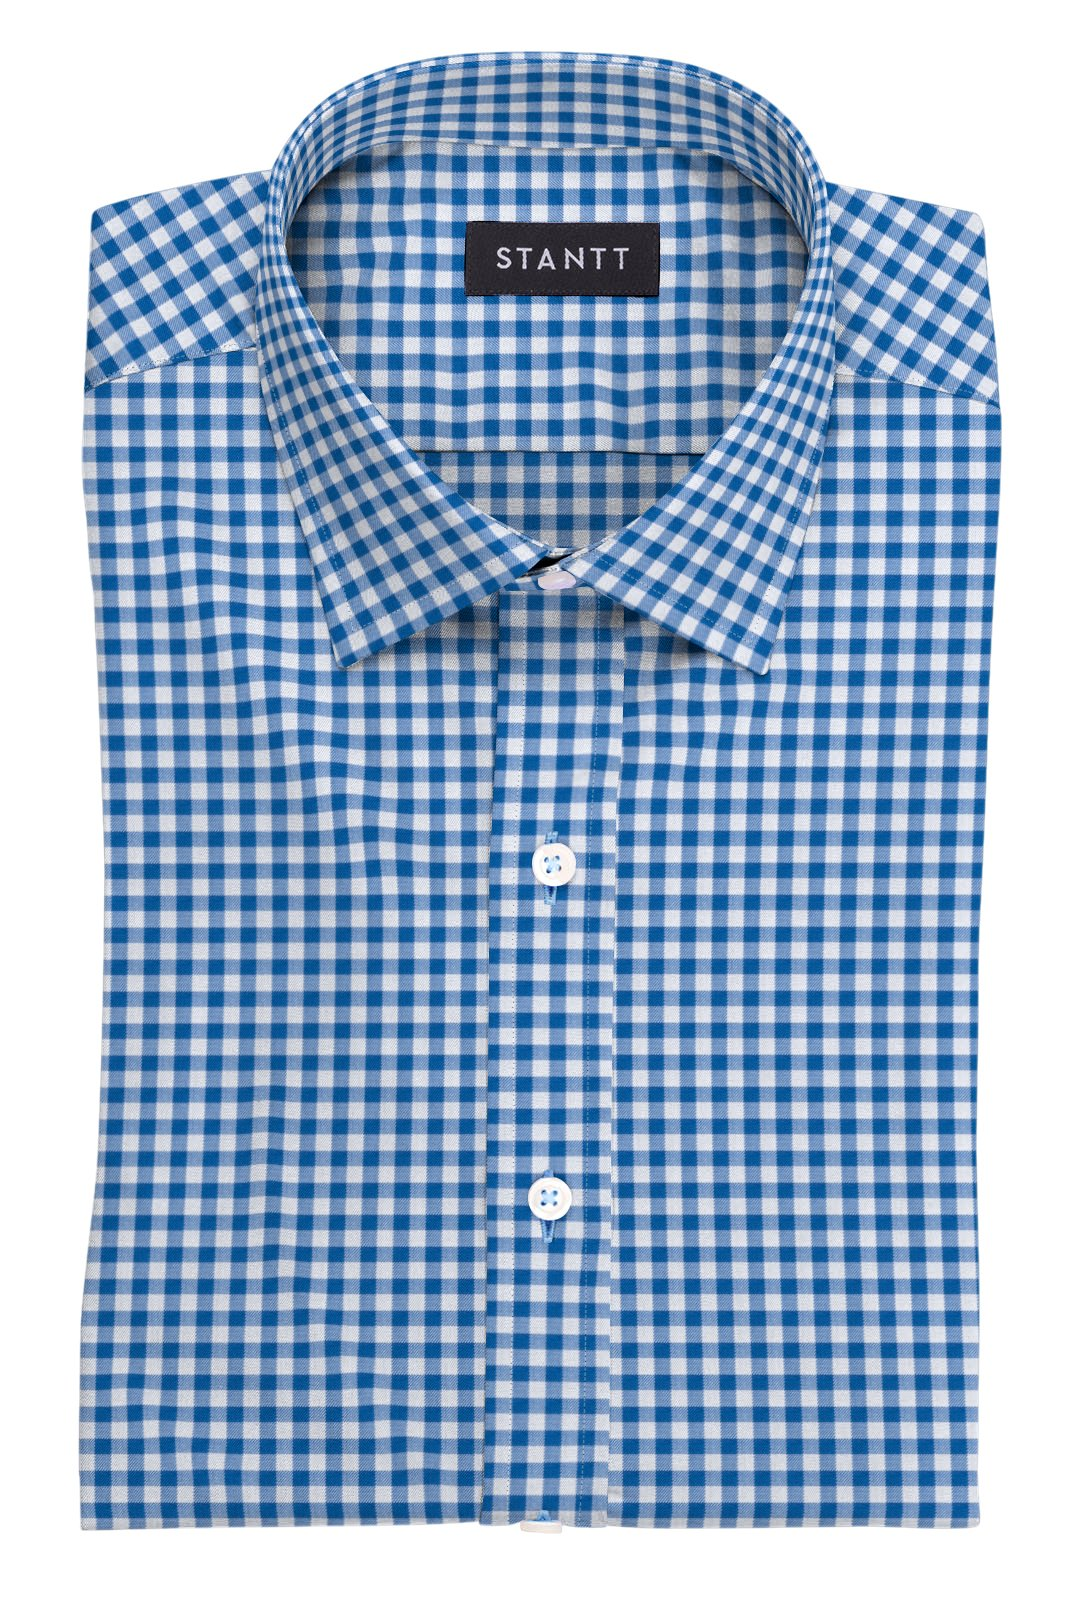 Blue Gingham: Modified Spread Collar, French Cuff